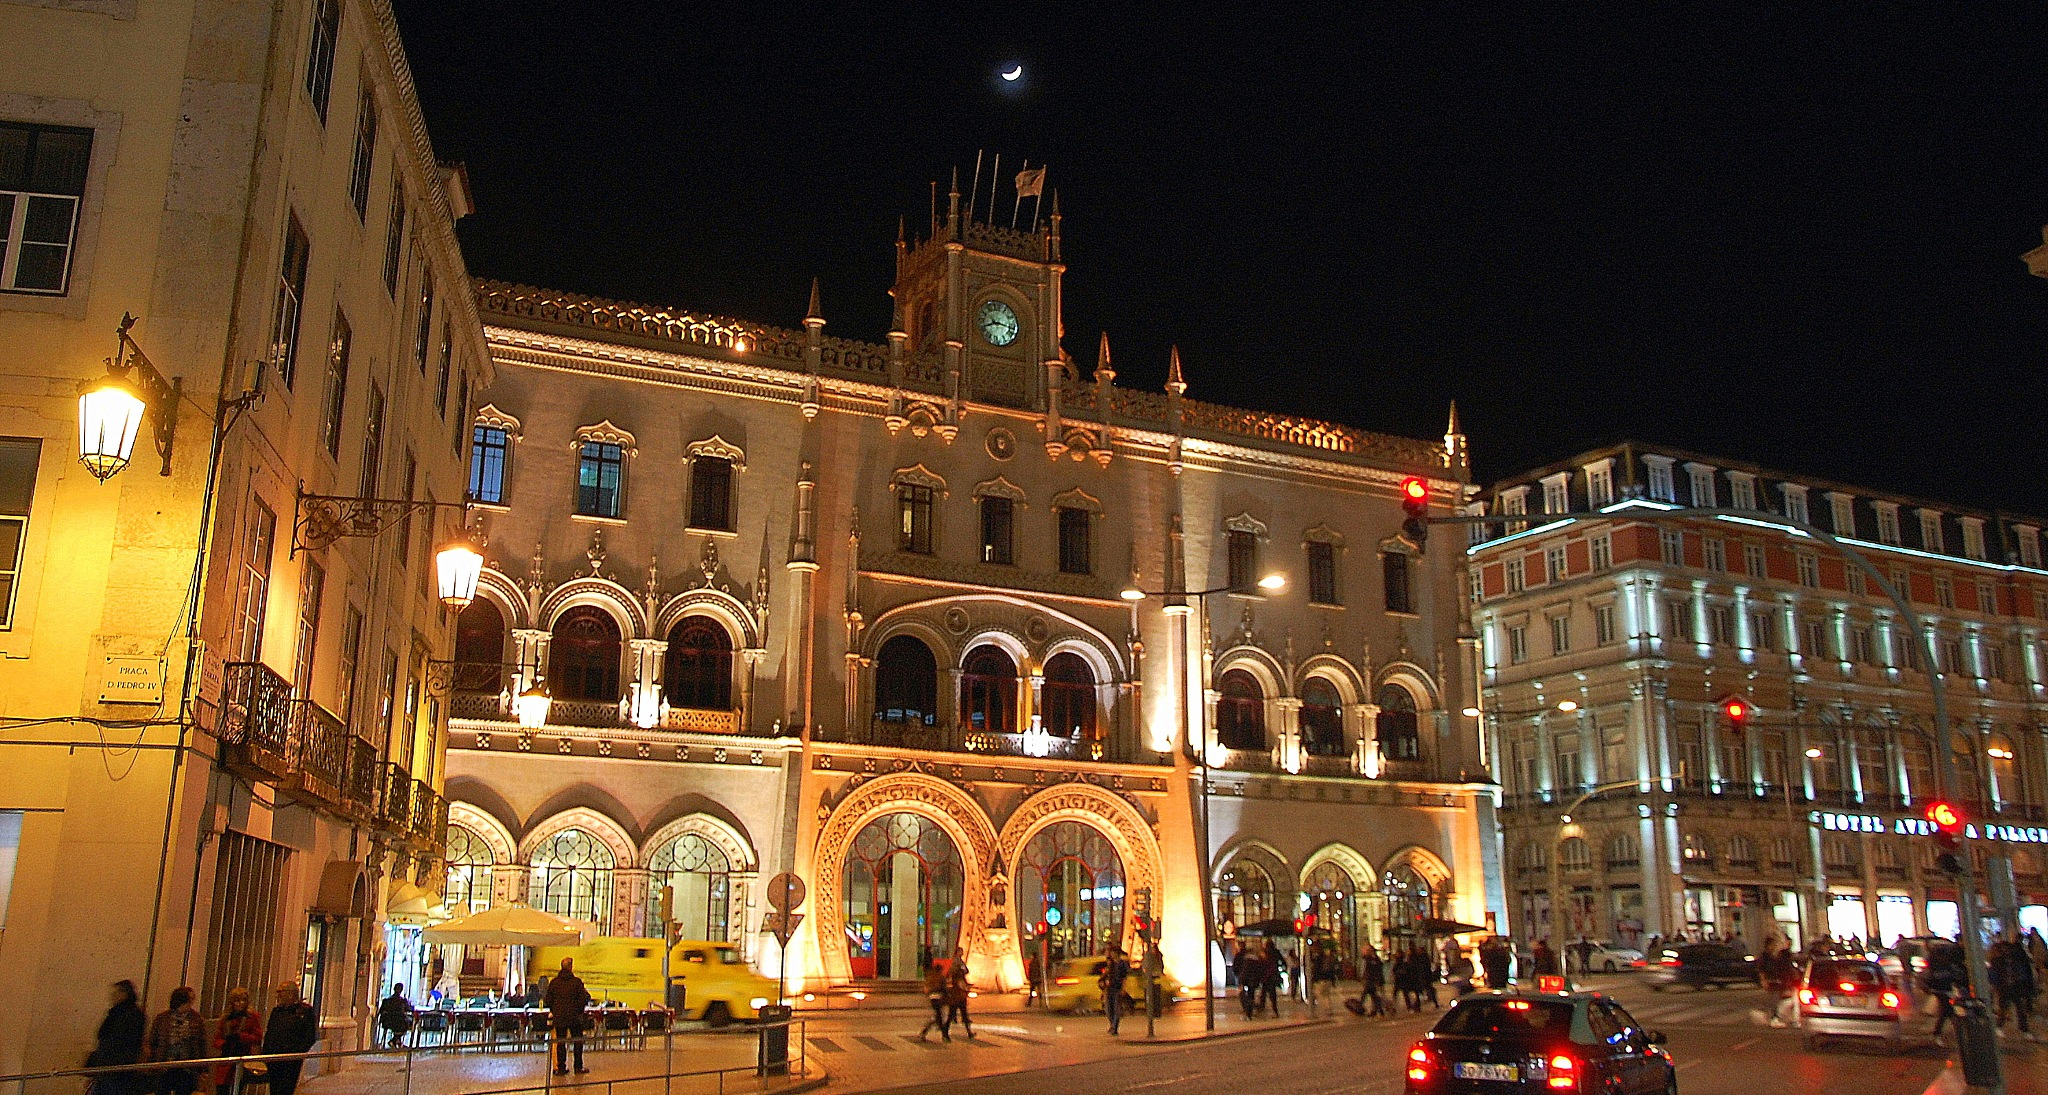 Rossio In Lisbon At Night by goga.dt